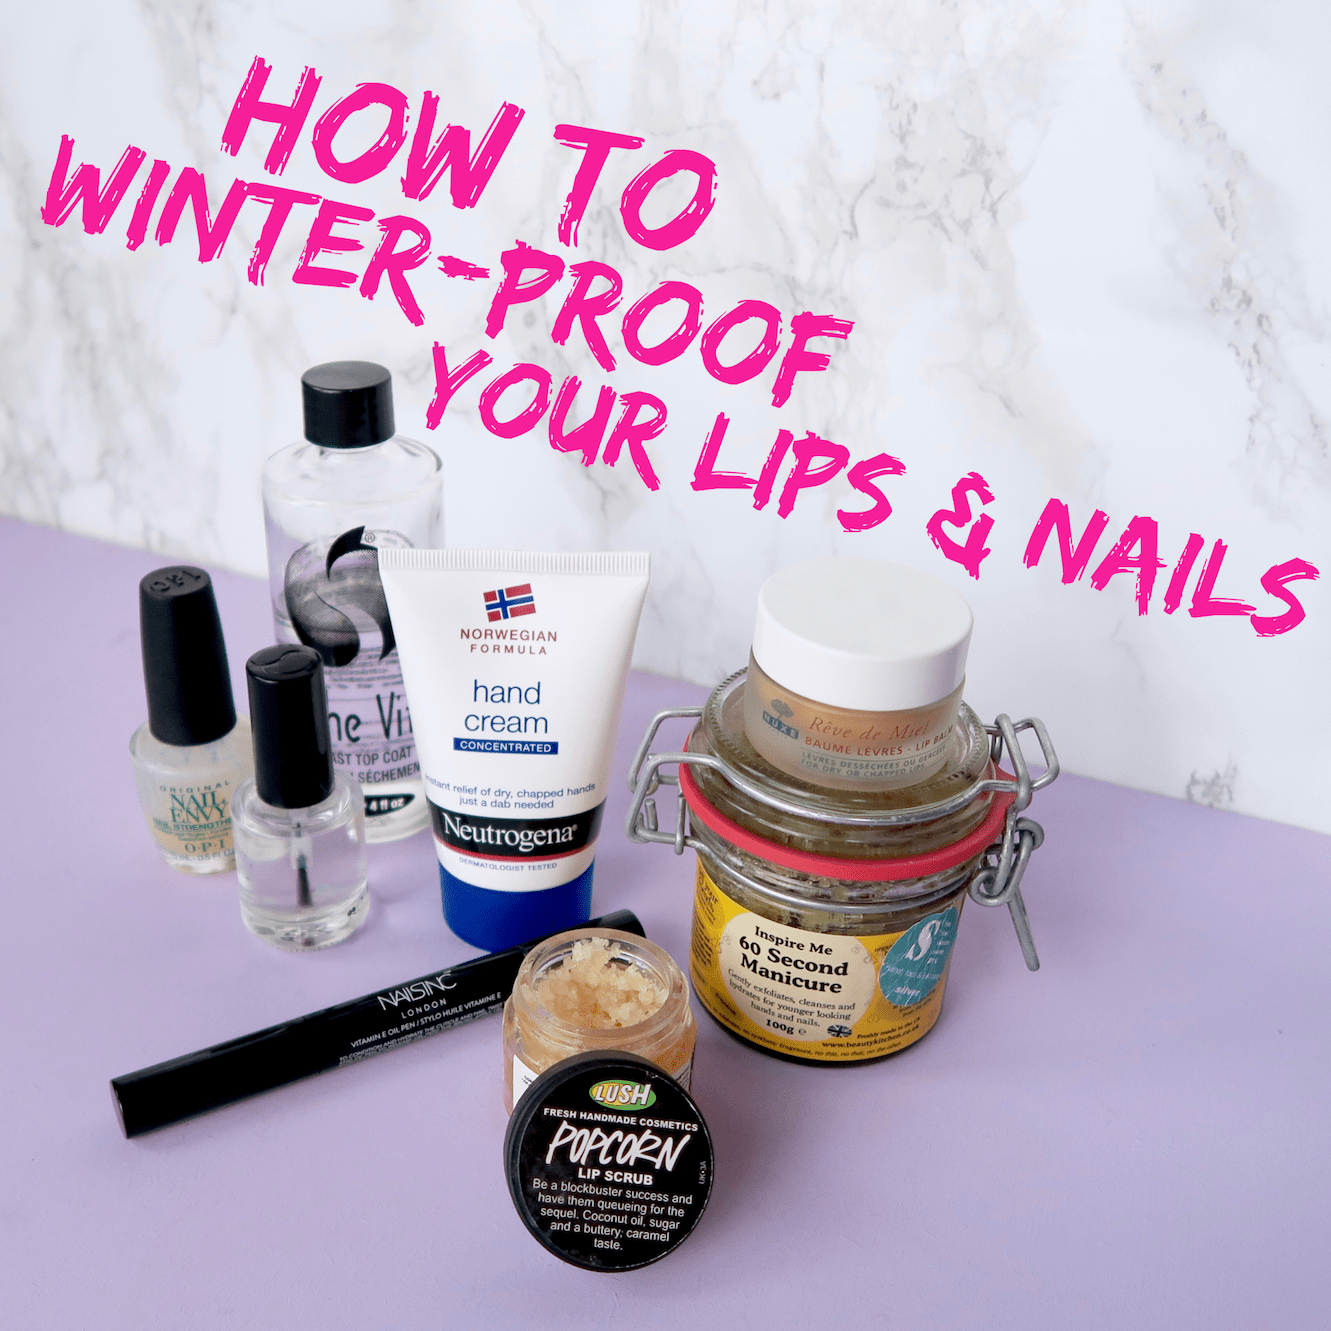 How To Winter-Proof Your Lips And Nails